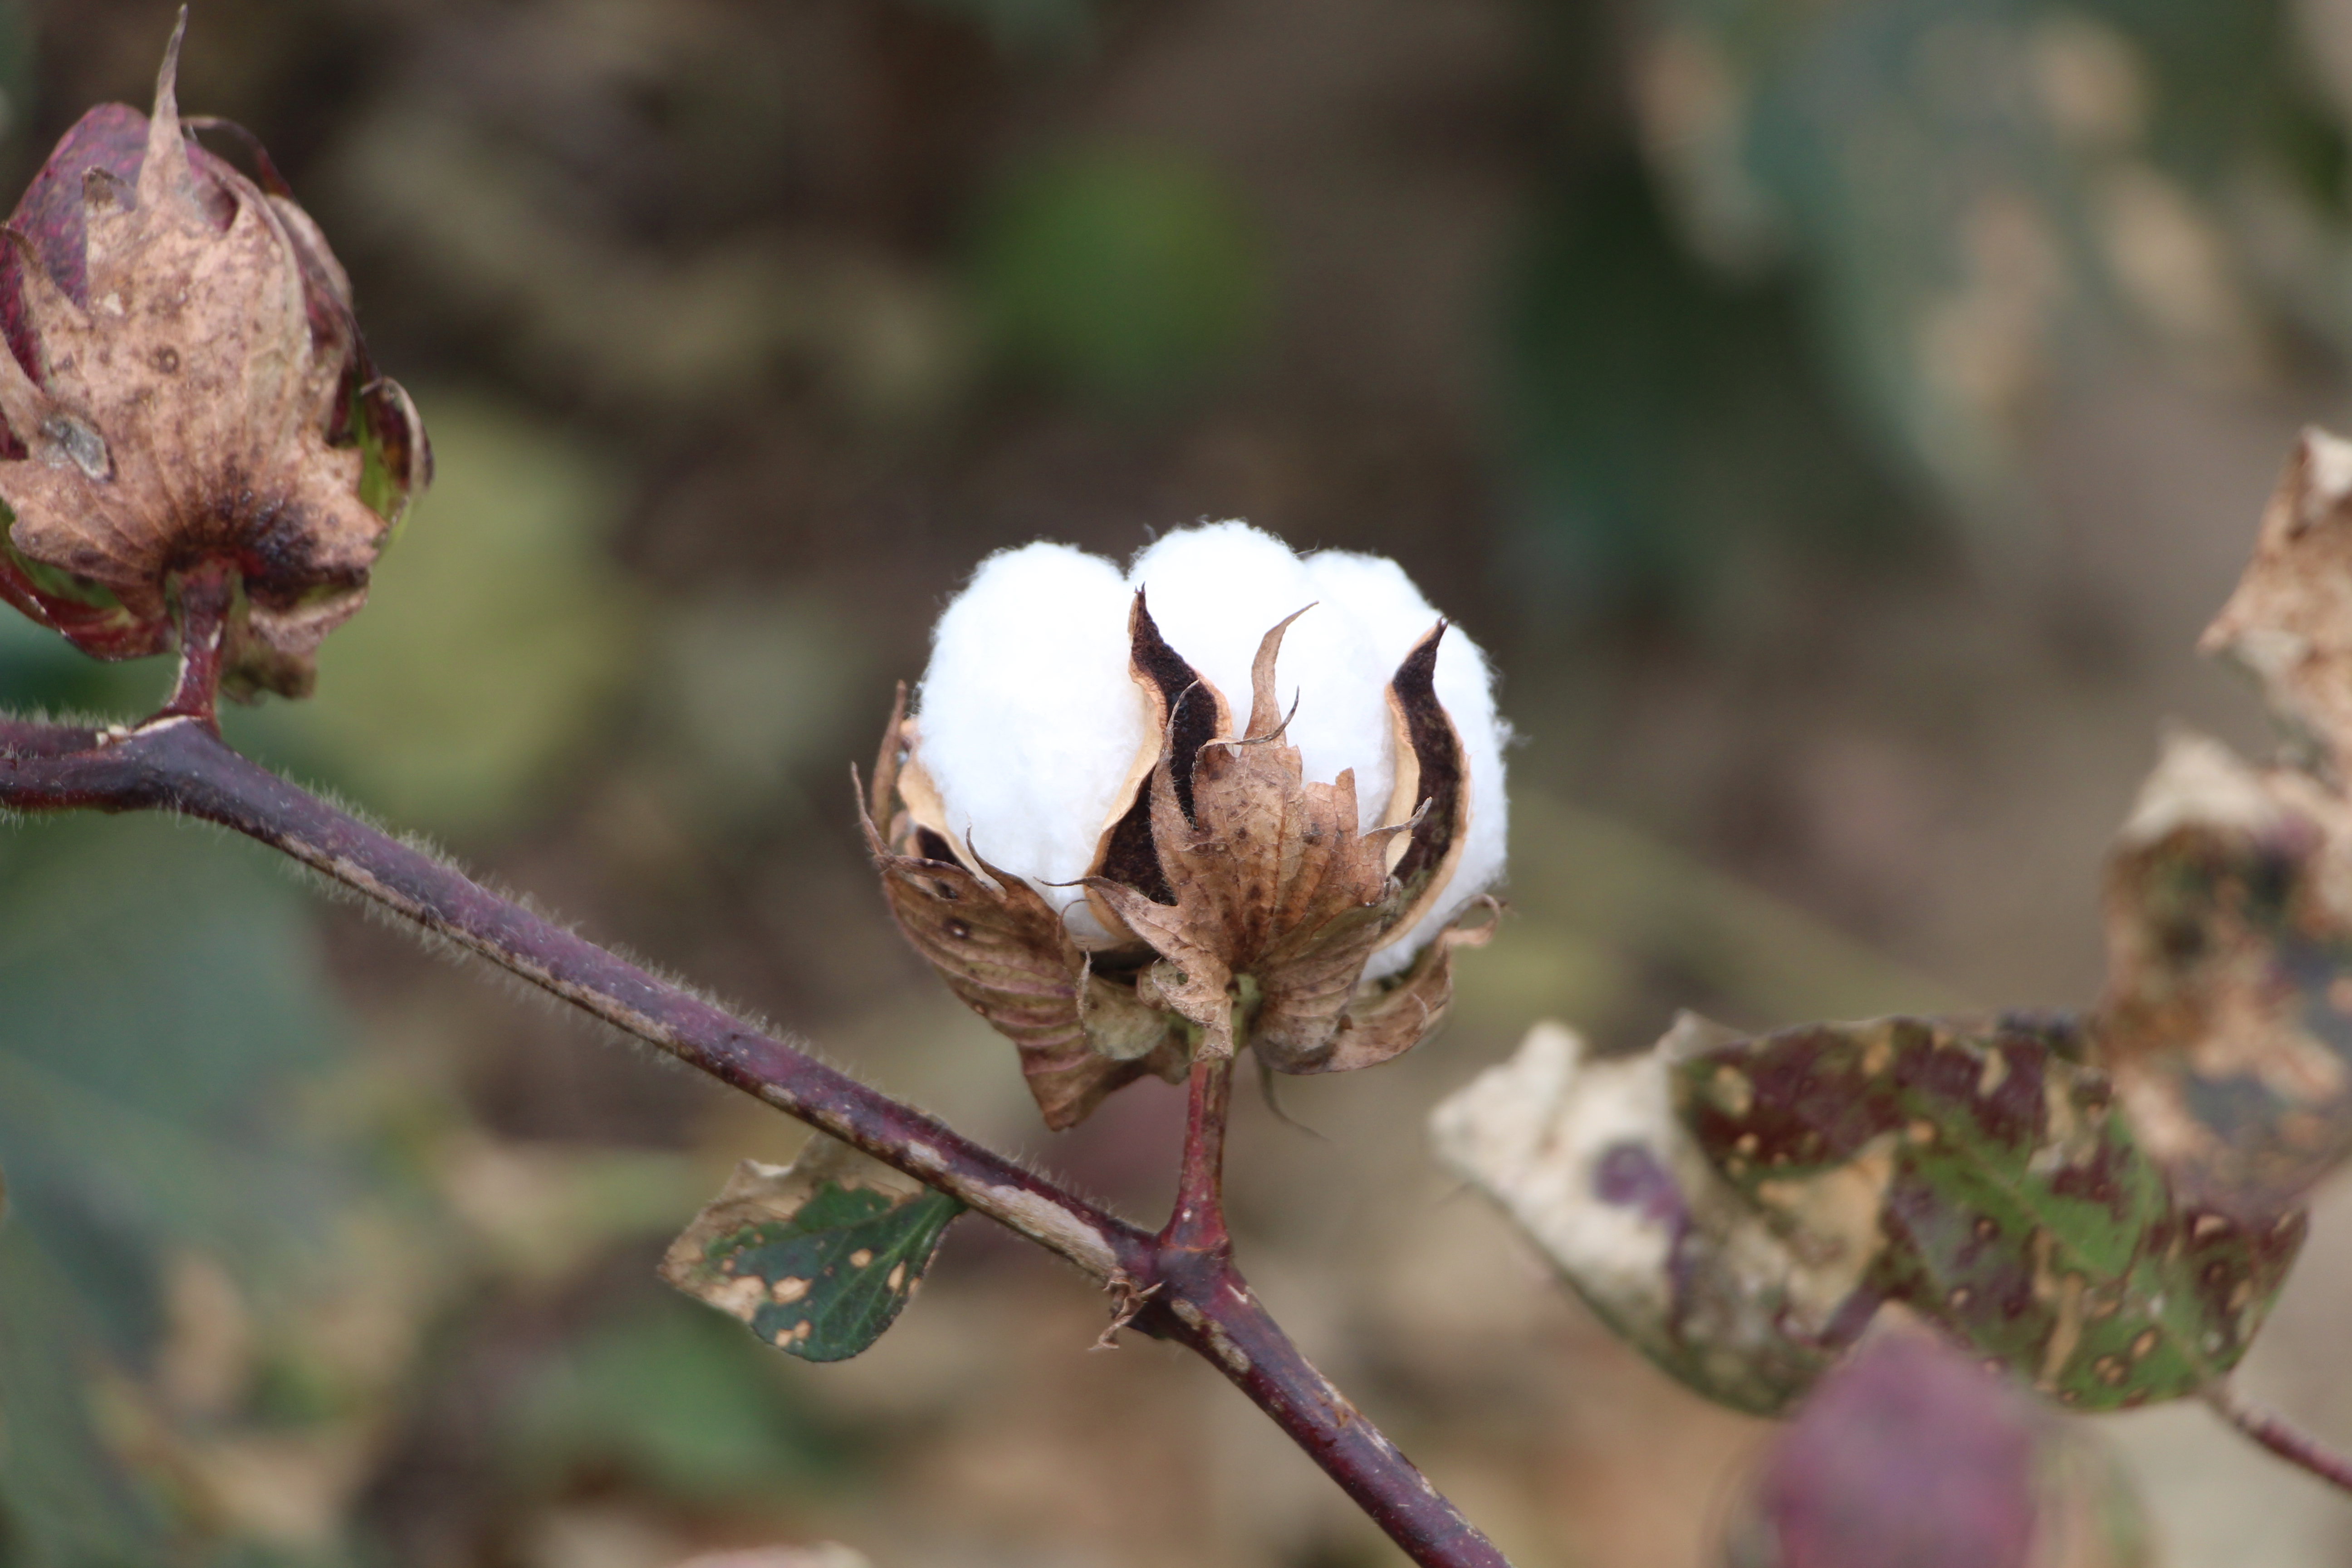 Color Cotton Plant Cracked Boll on a Cotton Plant